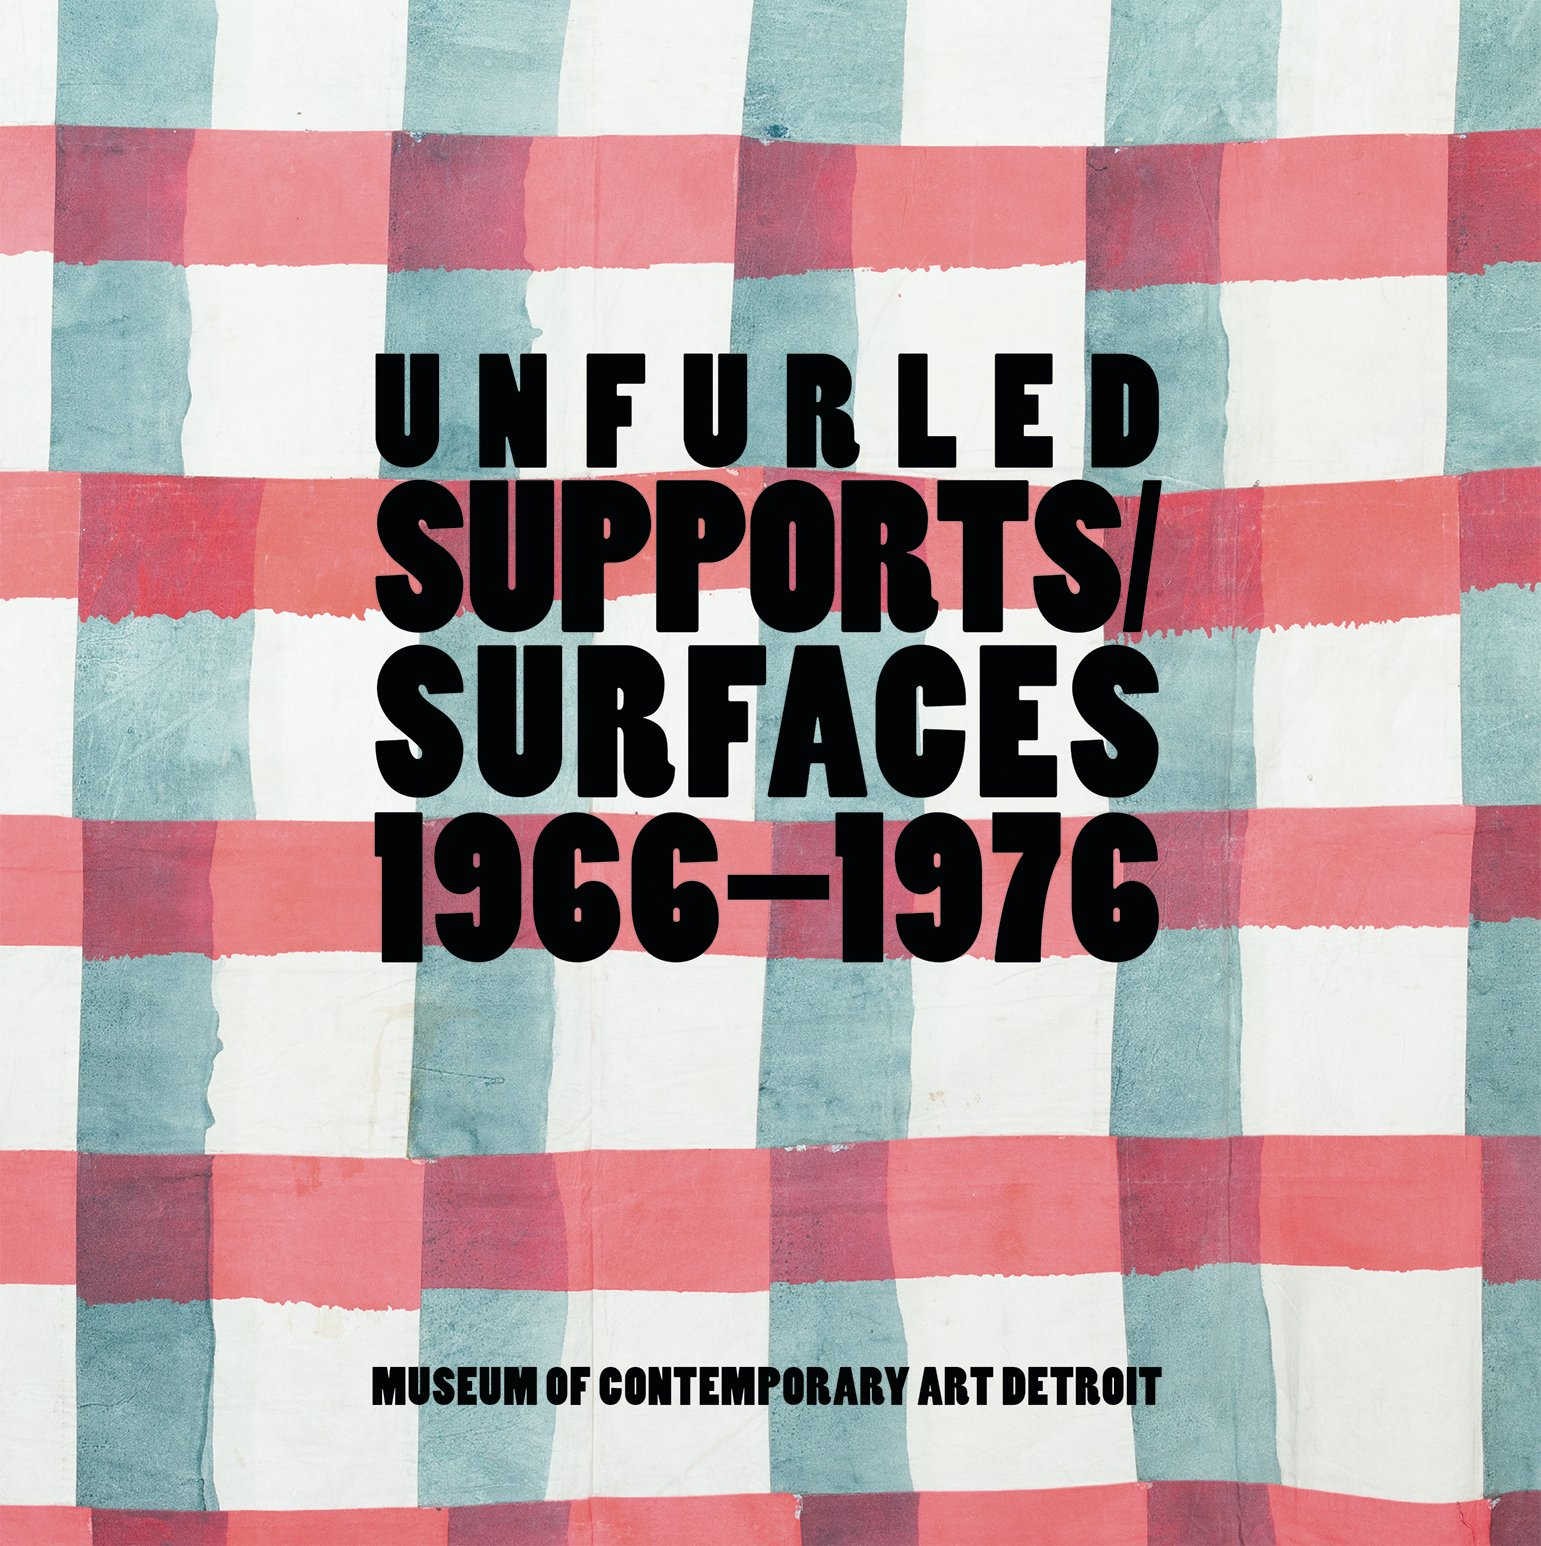 Unfurled: Supports/Surfaces 1966-1976